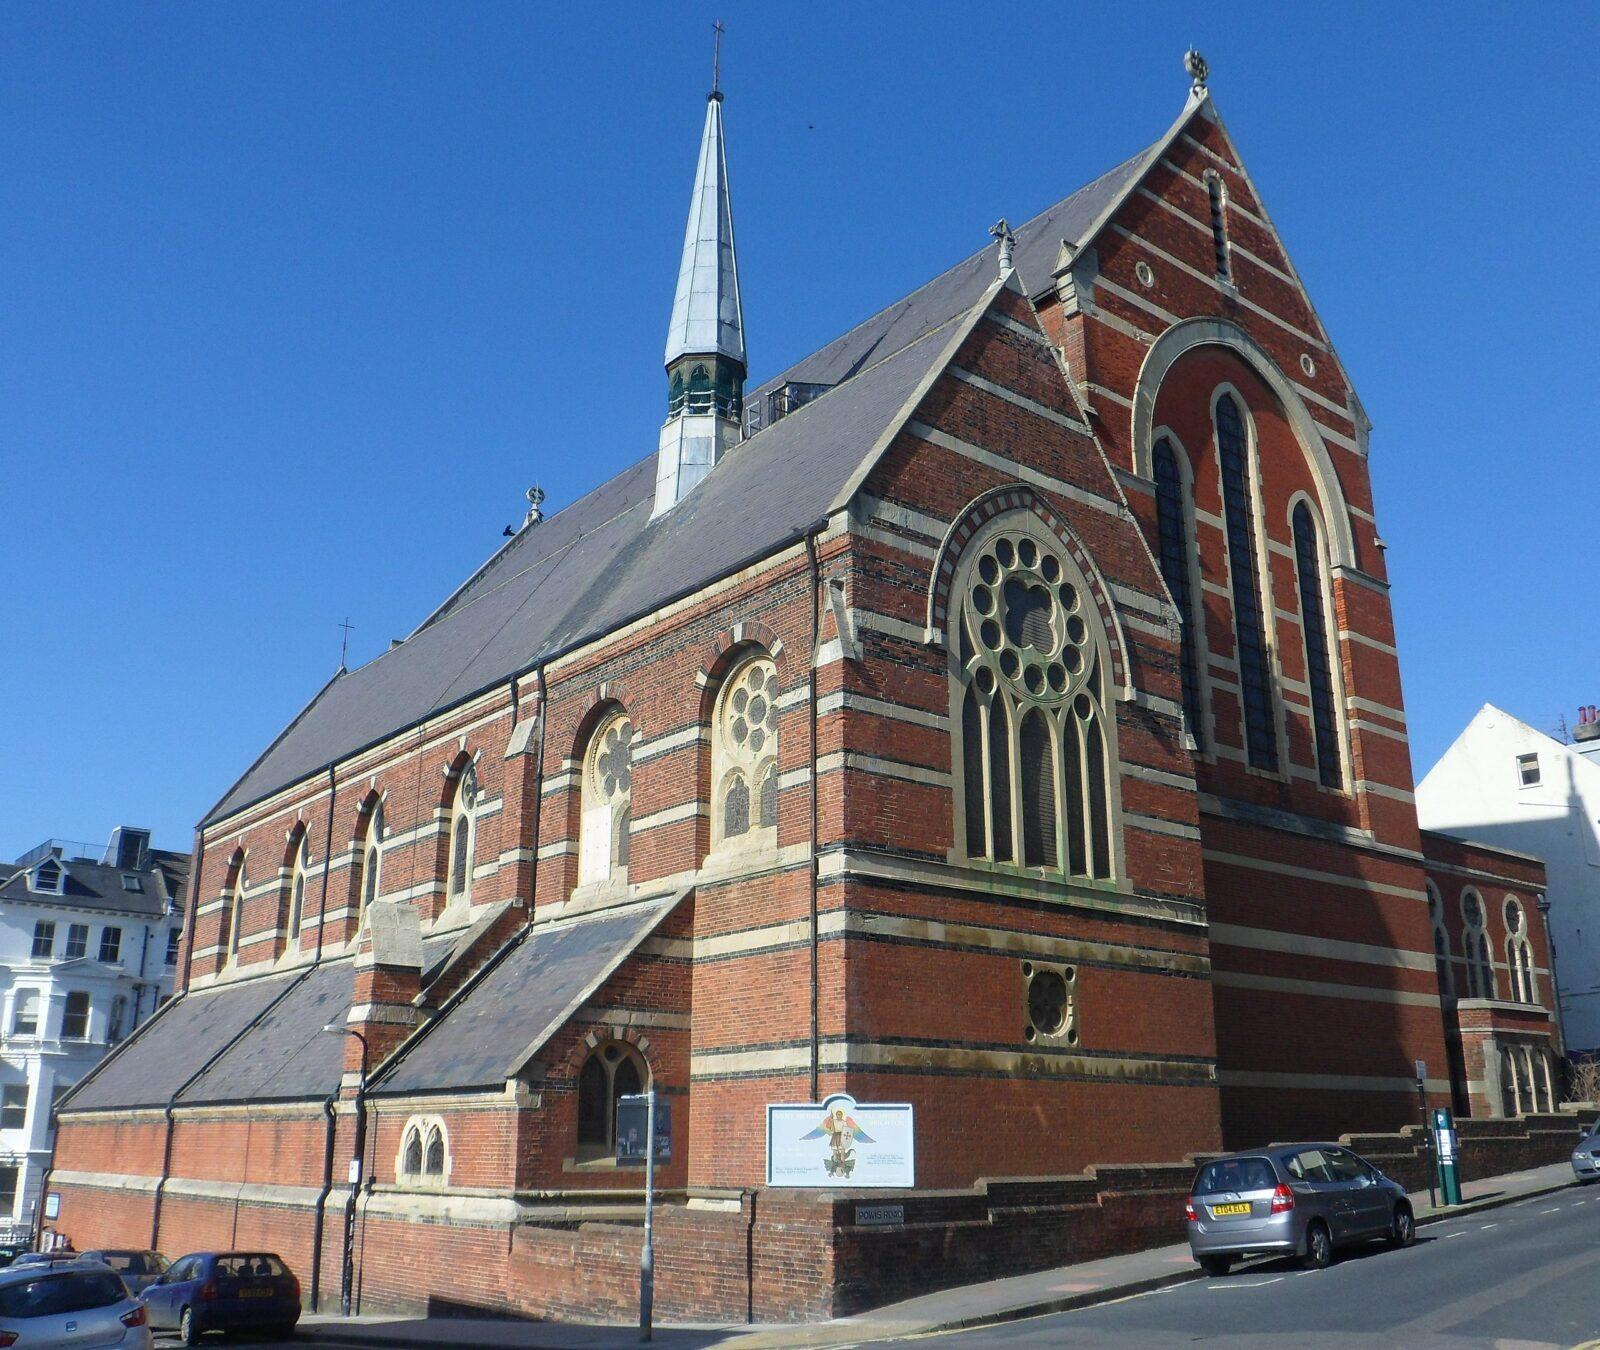 St Michael & All Angels, Lancing